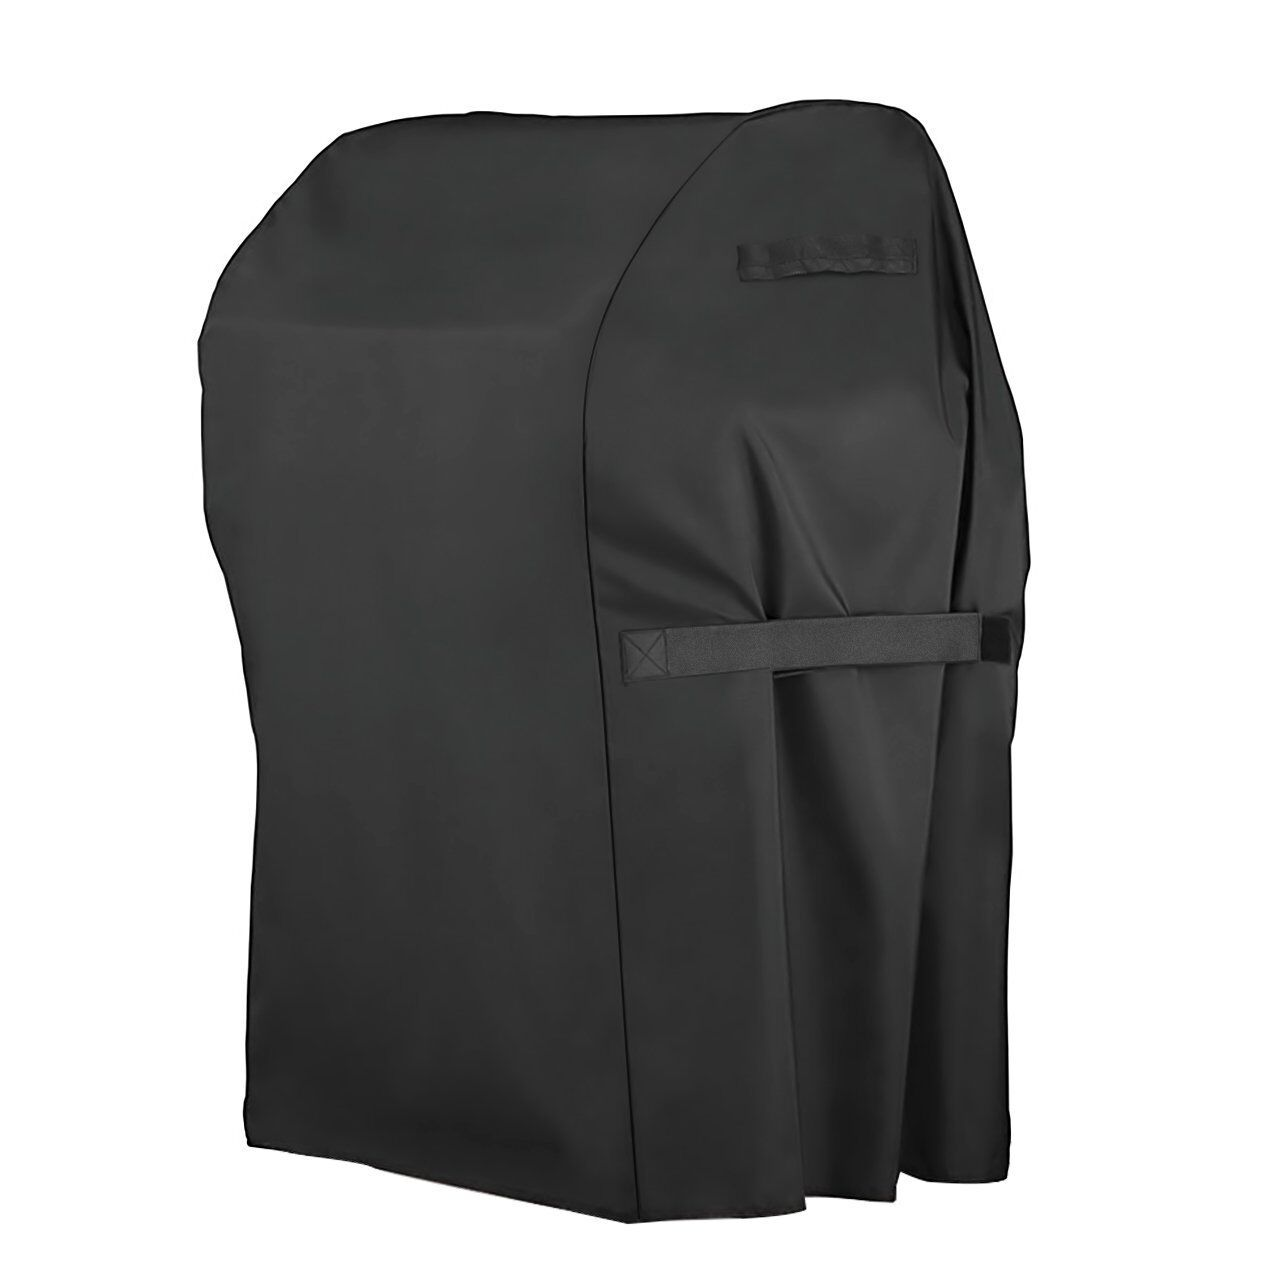 Grill Cover, Small 30-Inch Waterproof Heavy Duty Gas BBQ